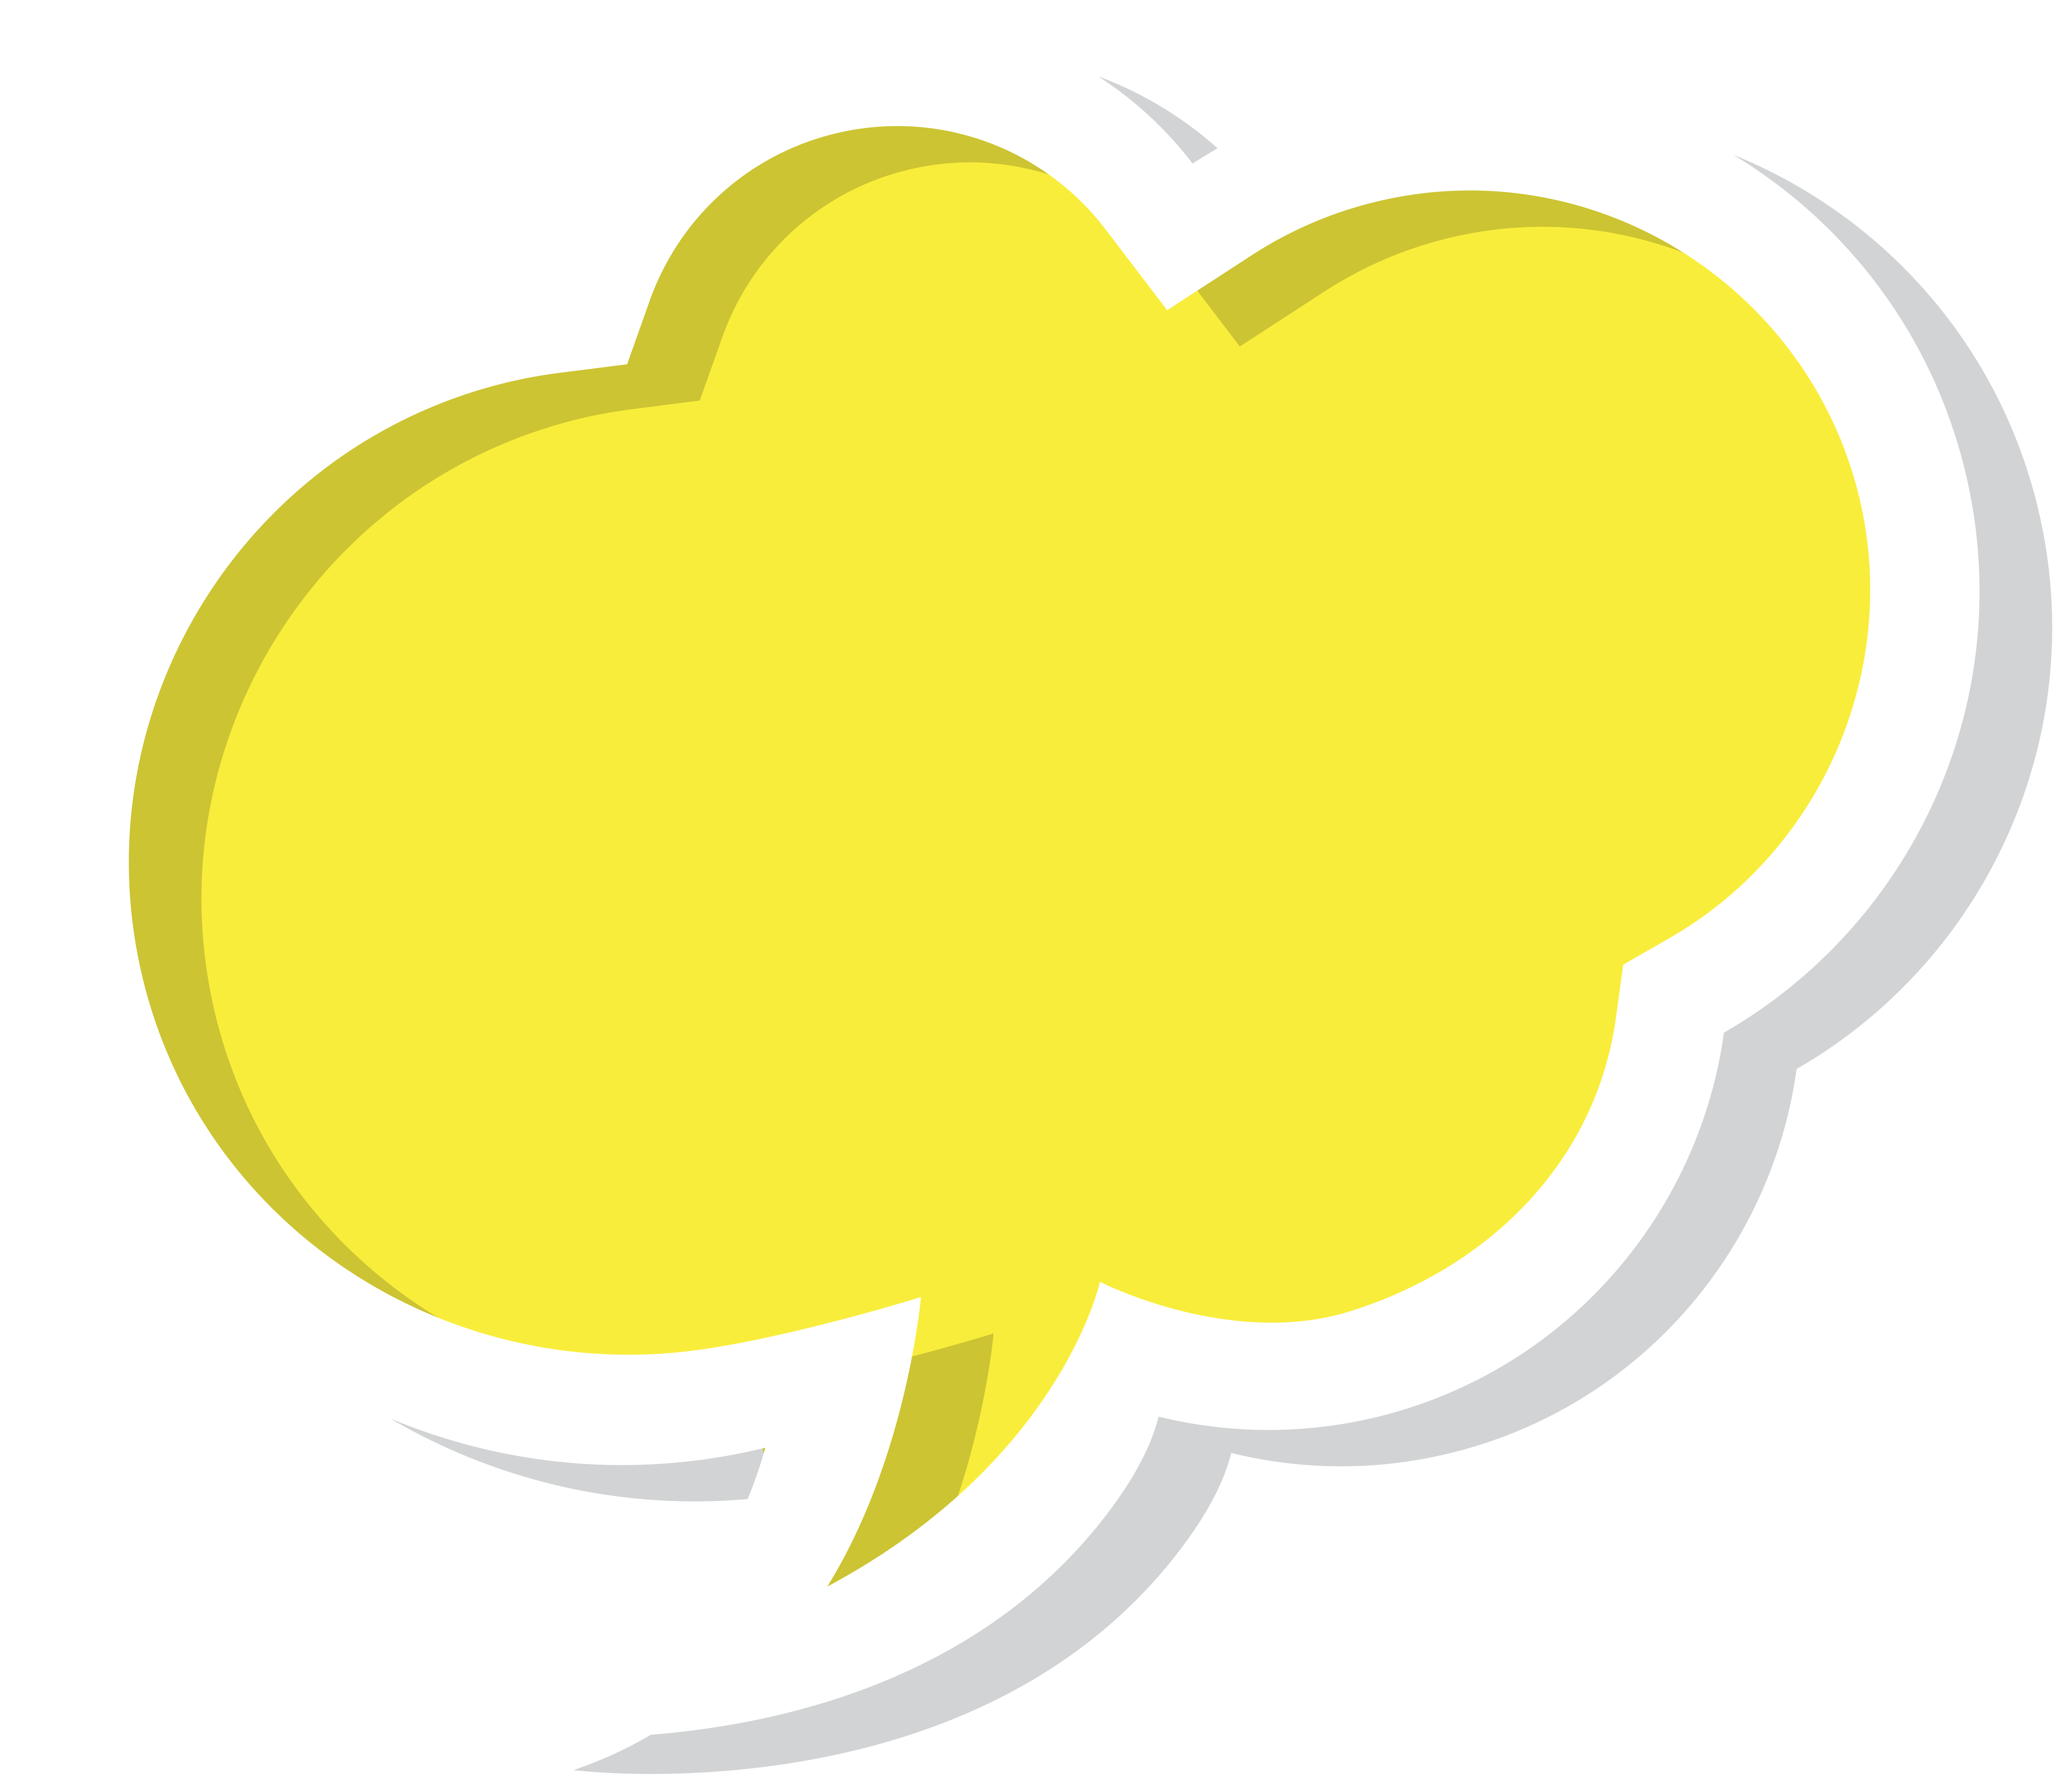 Yellow cloud clipart clipart freeuse download Bubble Speech Cloud Yellow PNG Clip Art Image | Gallery ... clipart freeuse download